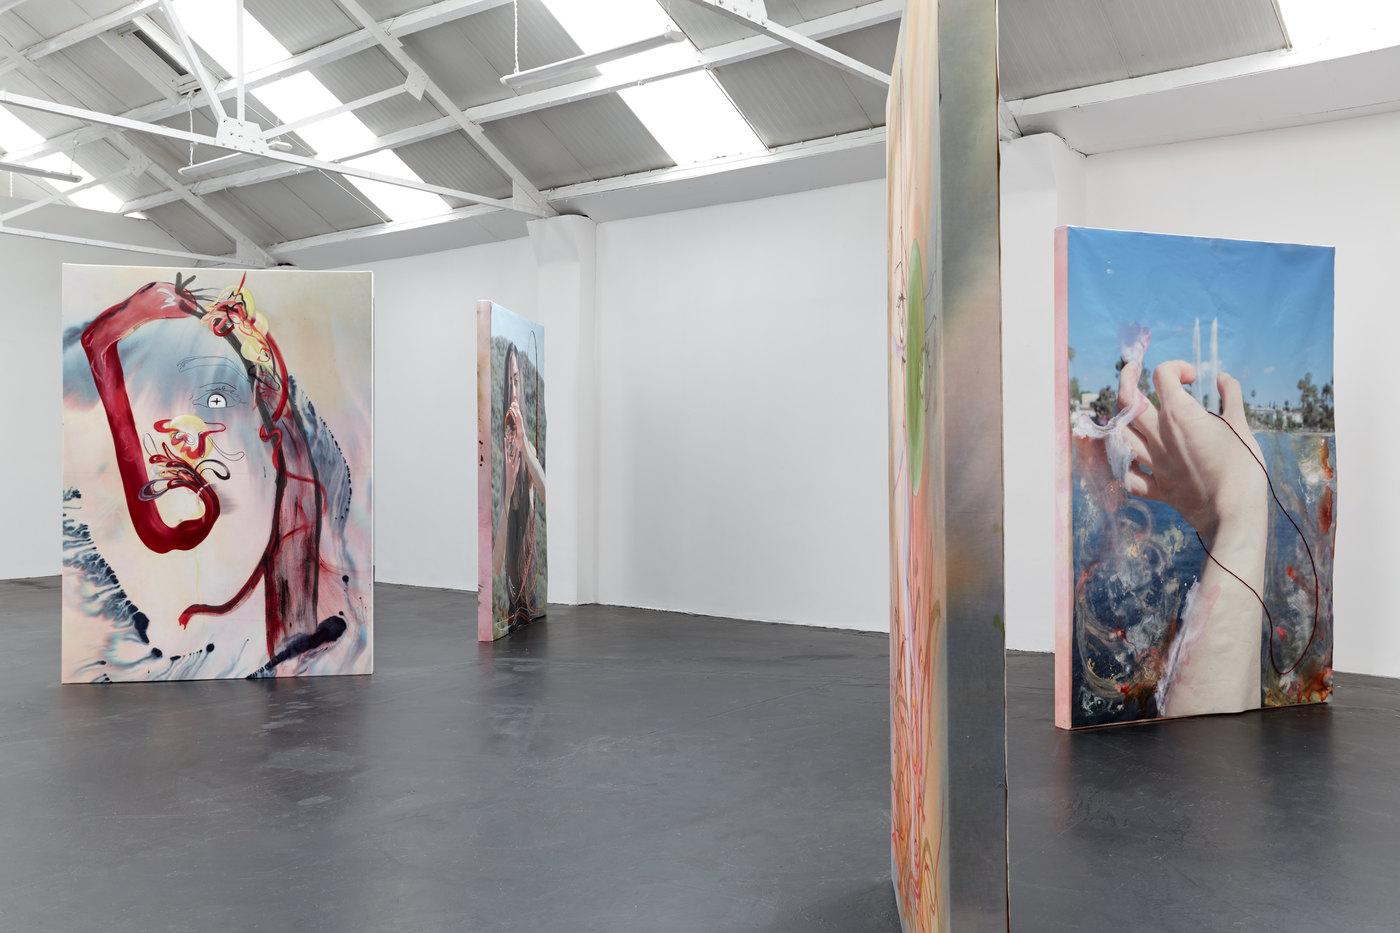 08.-Nora-Berman-Charm-Installation-View-VIII